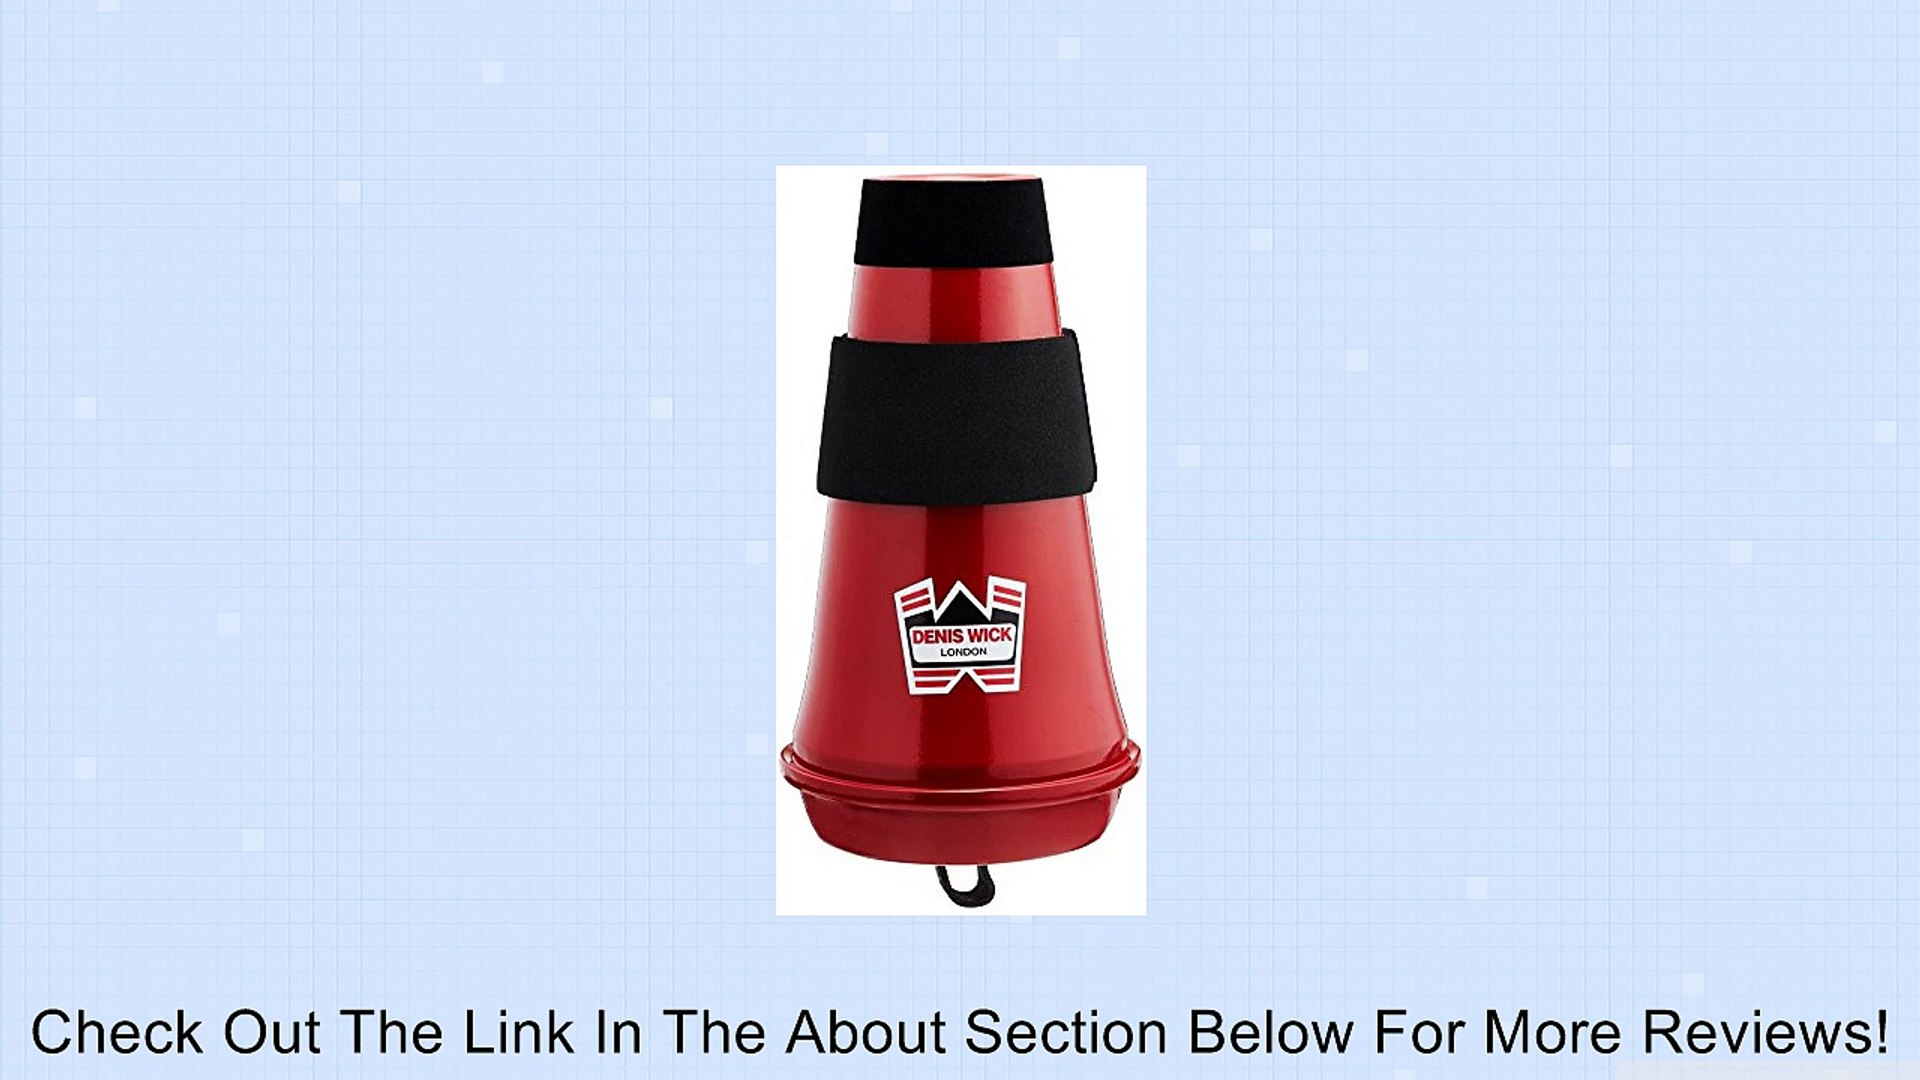 Denis Wick DW5587 Euphonium Red Aluminum Travel Mute